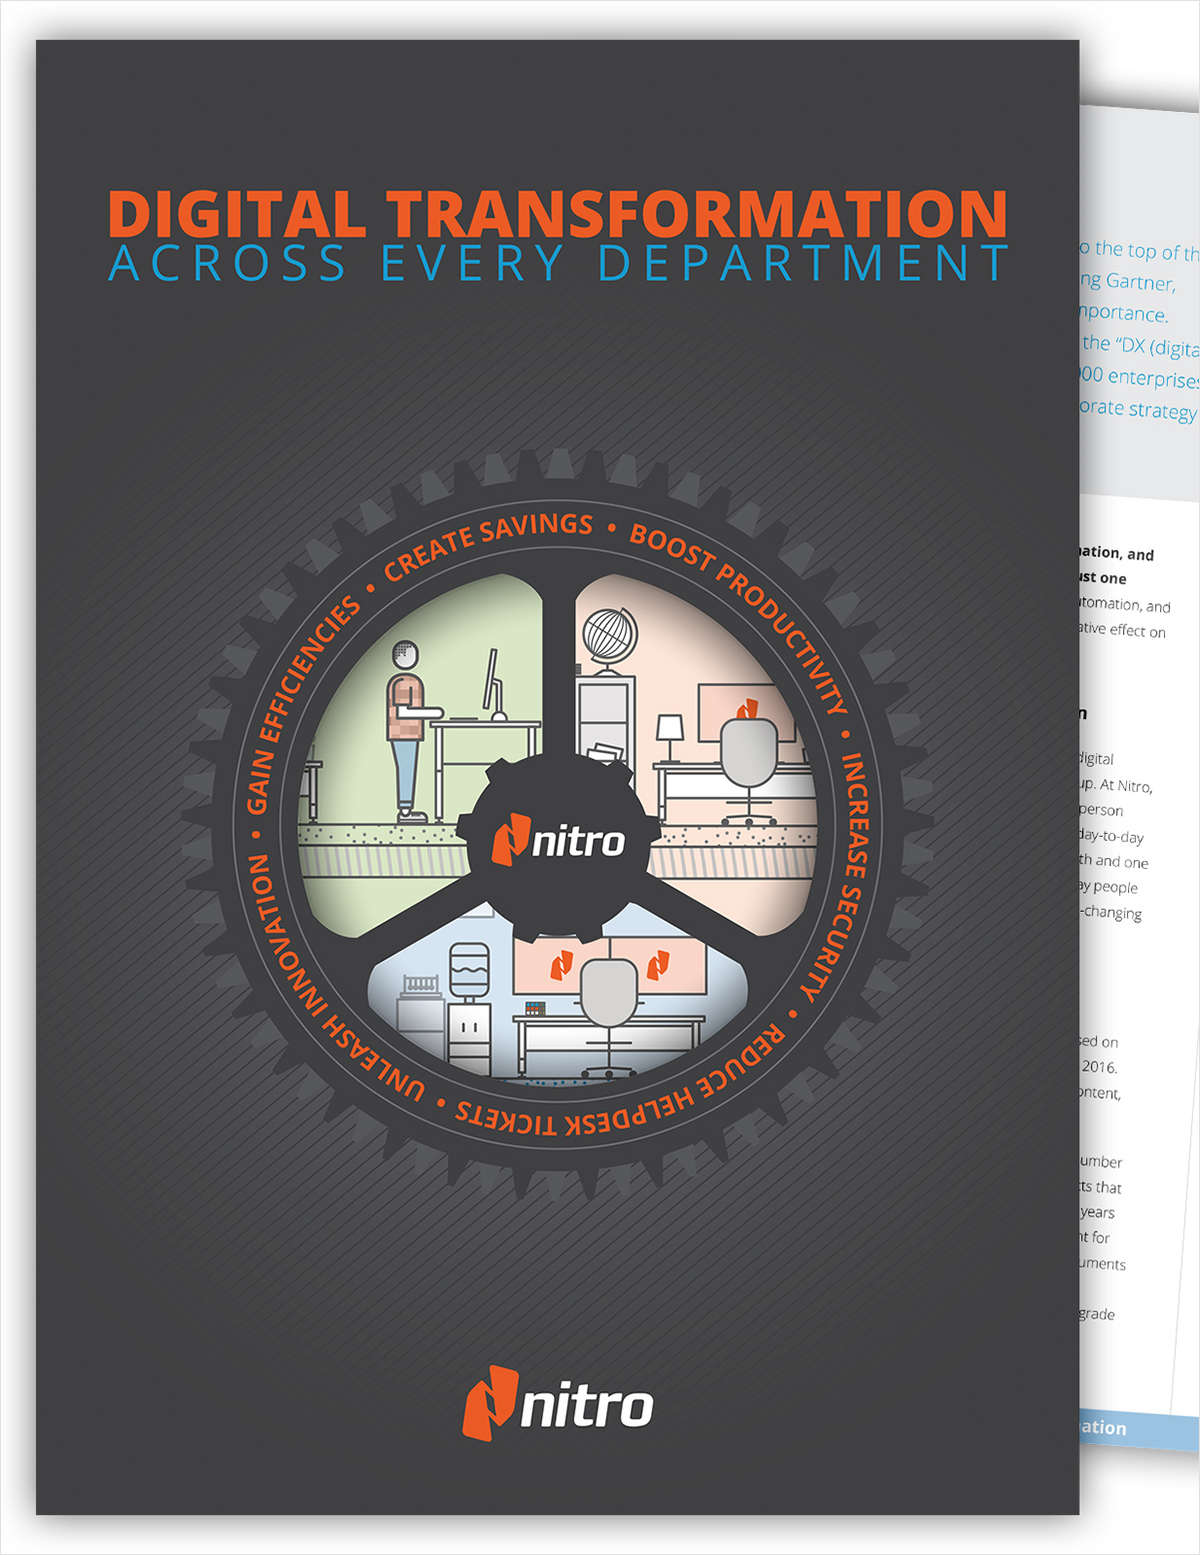 Digital Transformation Across Every Department